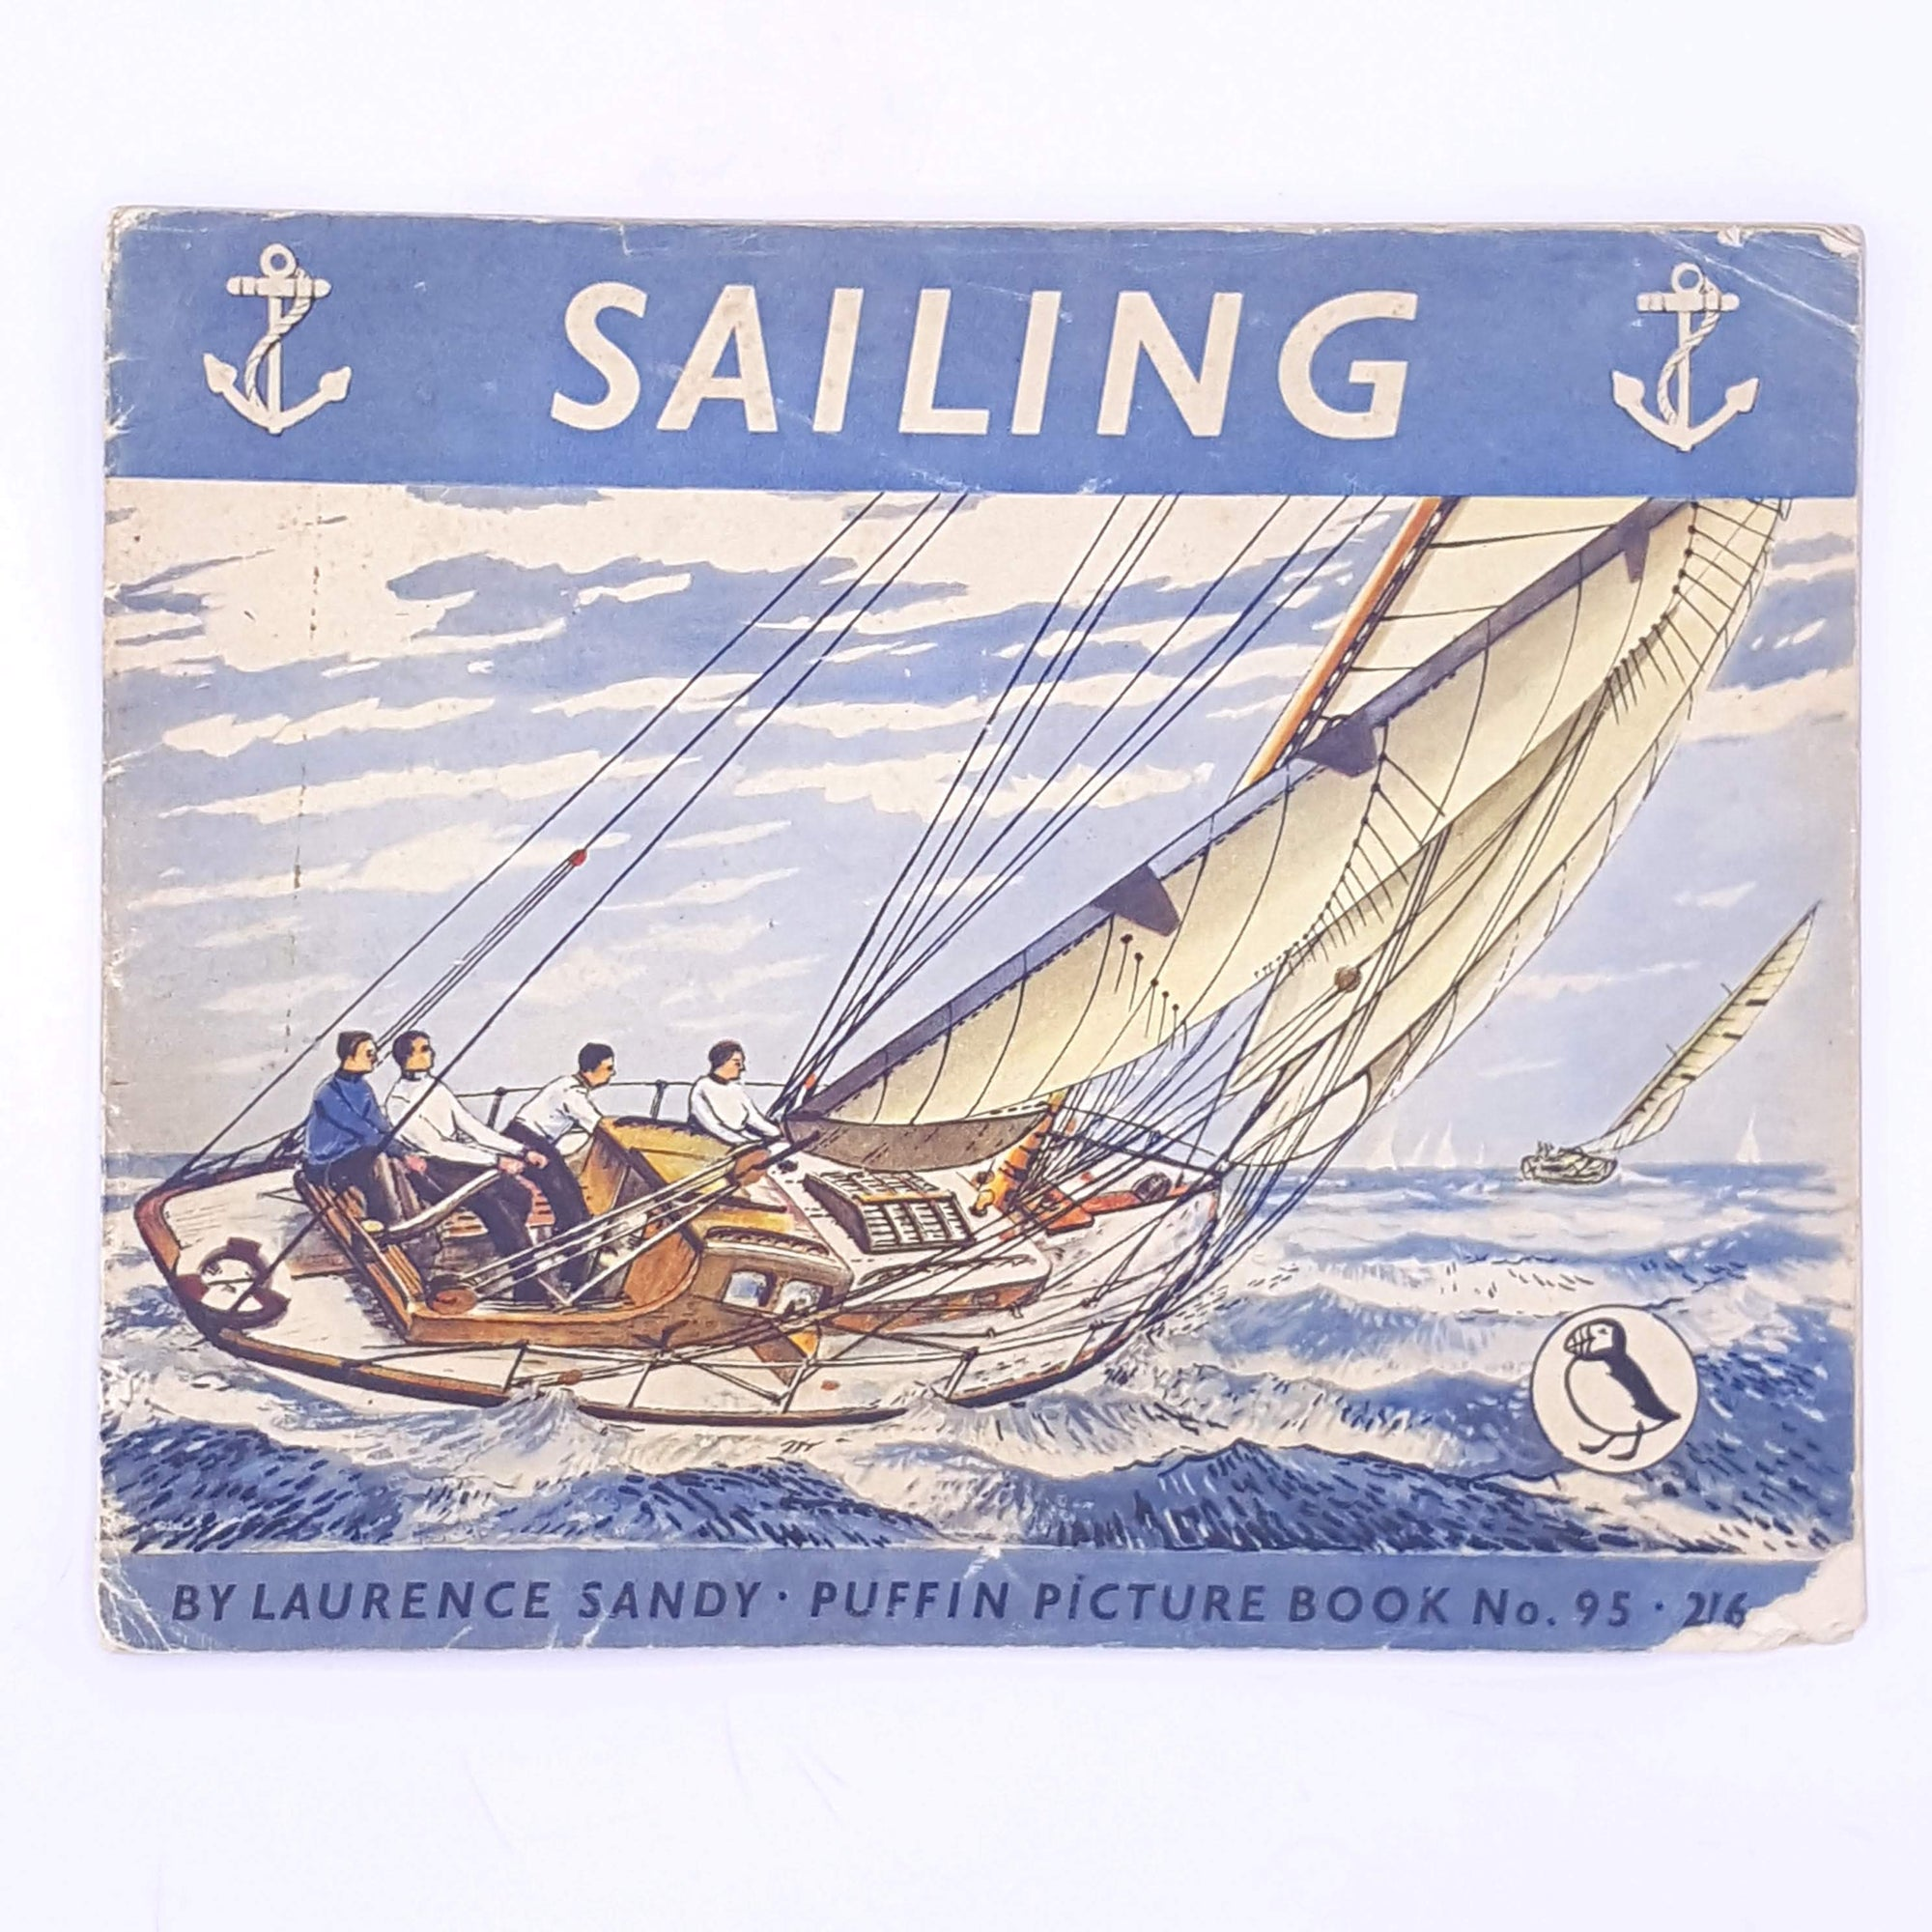 Sailing a puffin picture book, 1953, Laurence Sandy